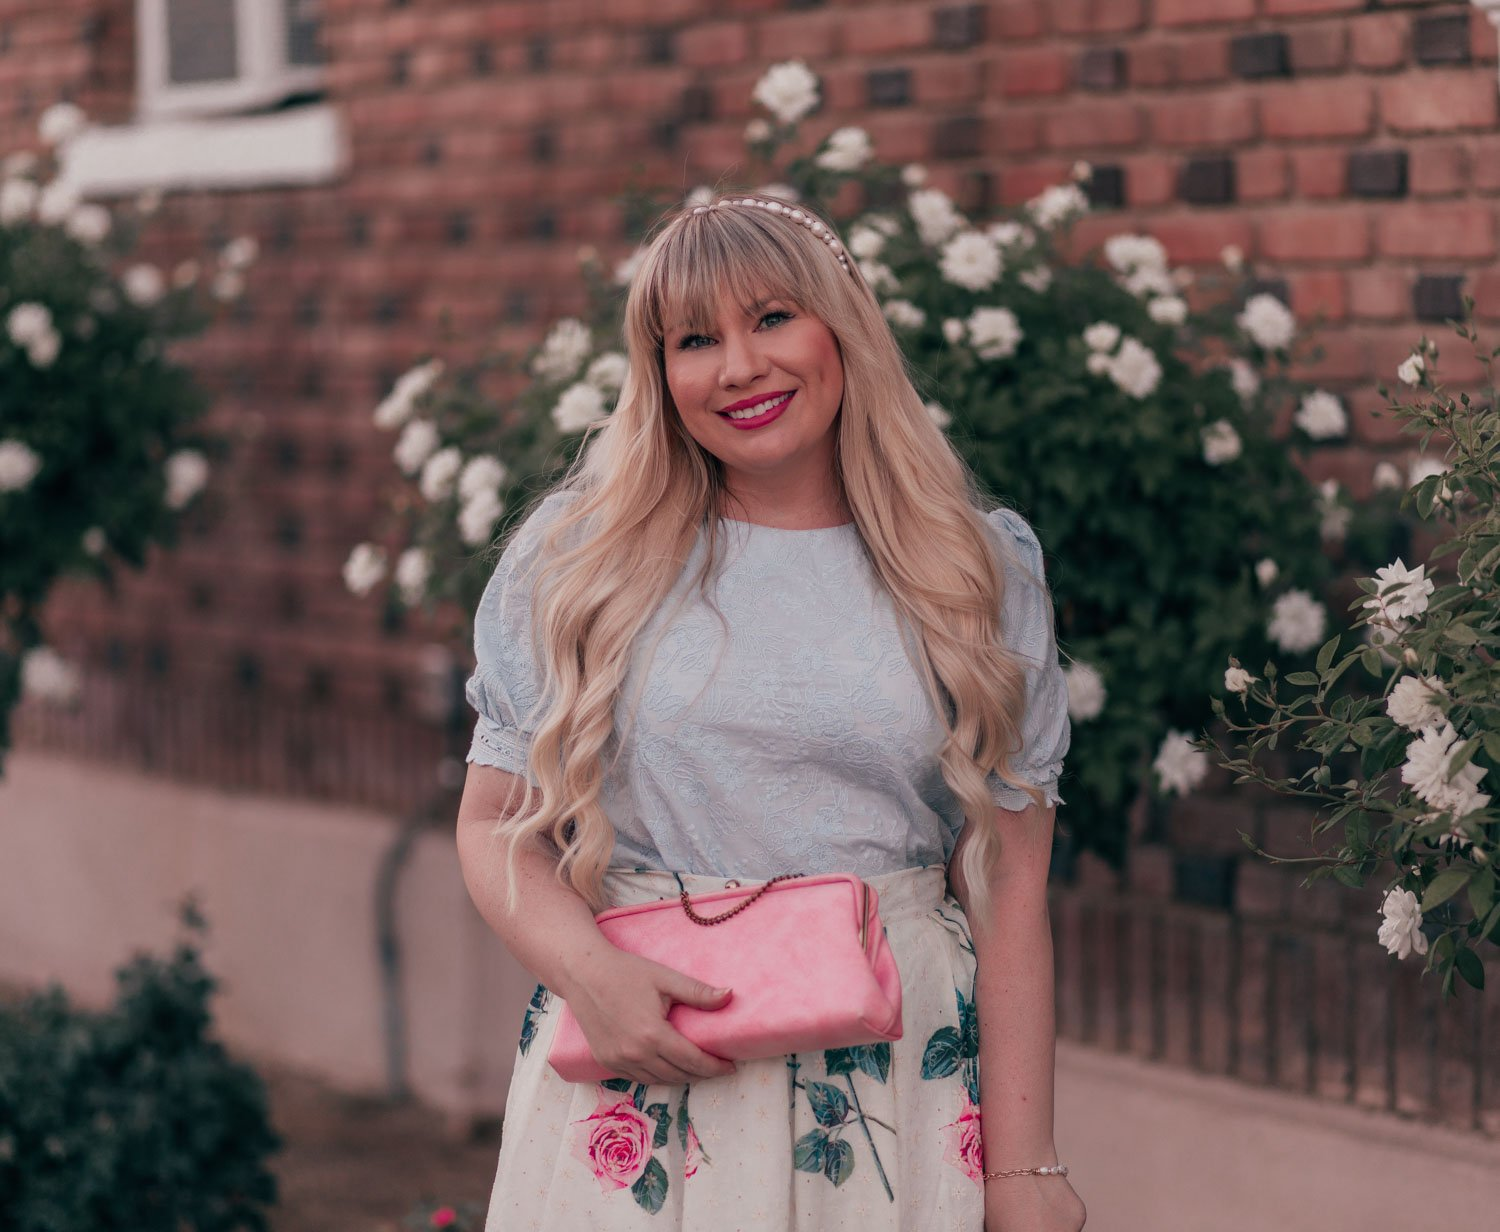 Feminine fashion blogger Elizabeth Hugen of Lizzie in Lace shares a pretty pastel vintage inspired floral skirt outfit with a light blue puff sleeve top and pink vintage handbag